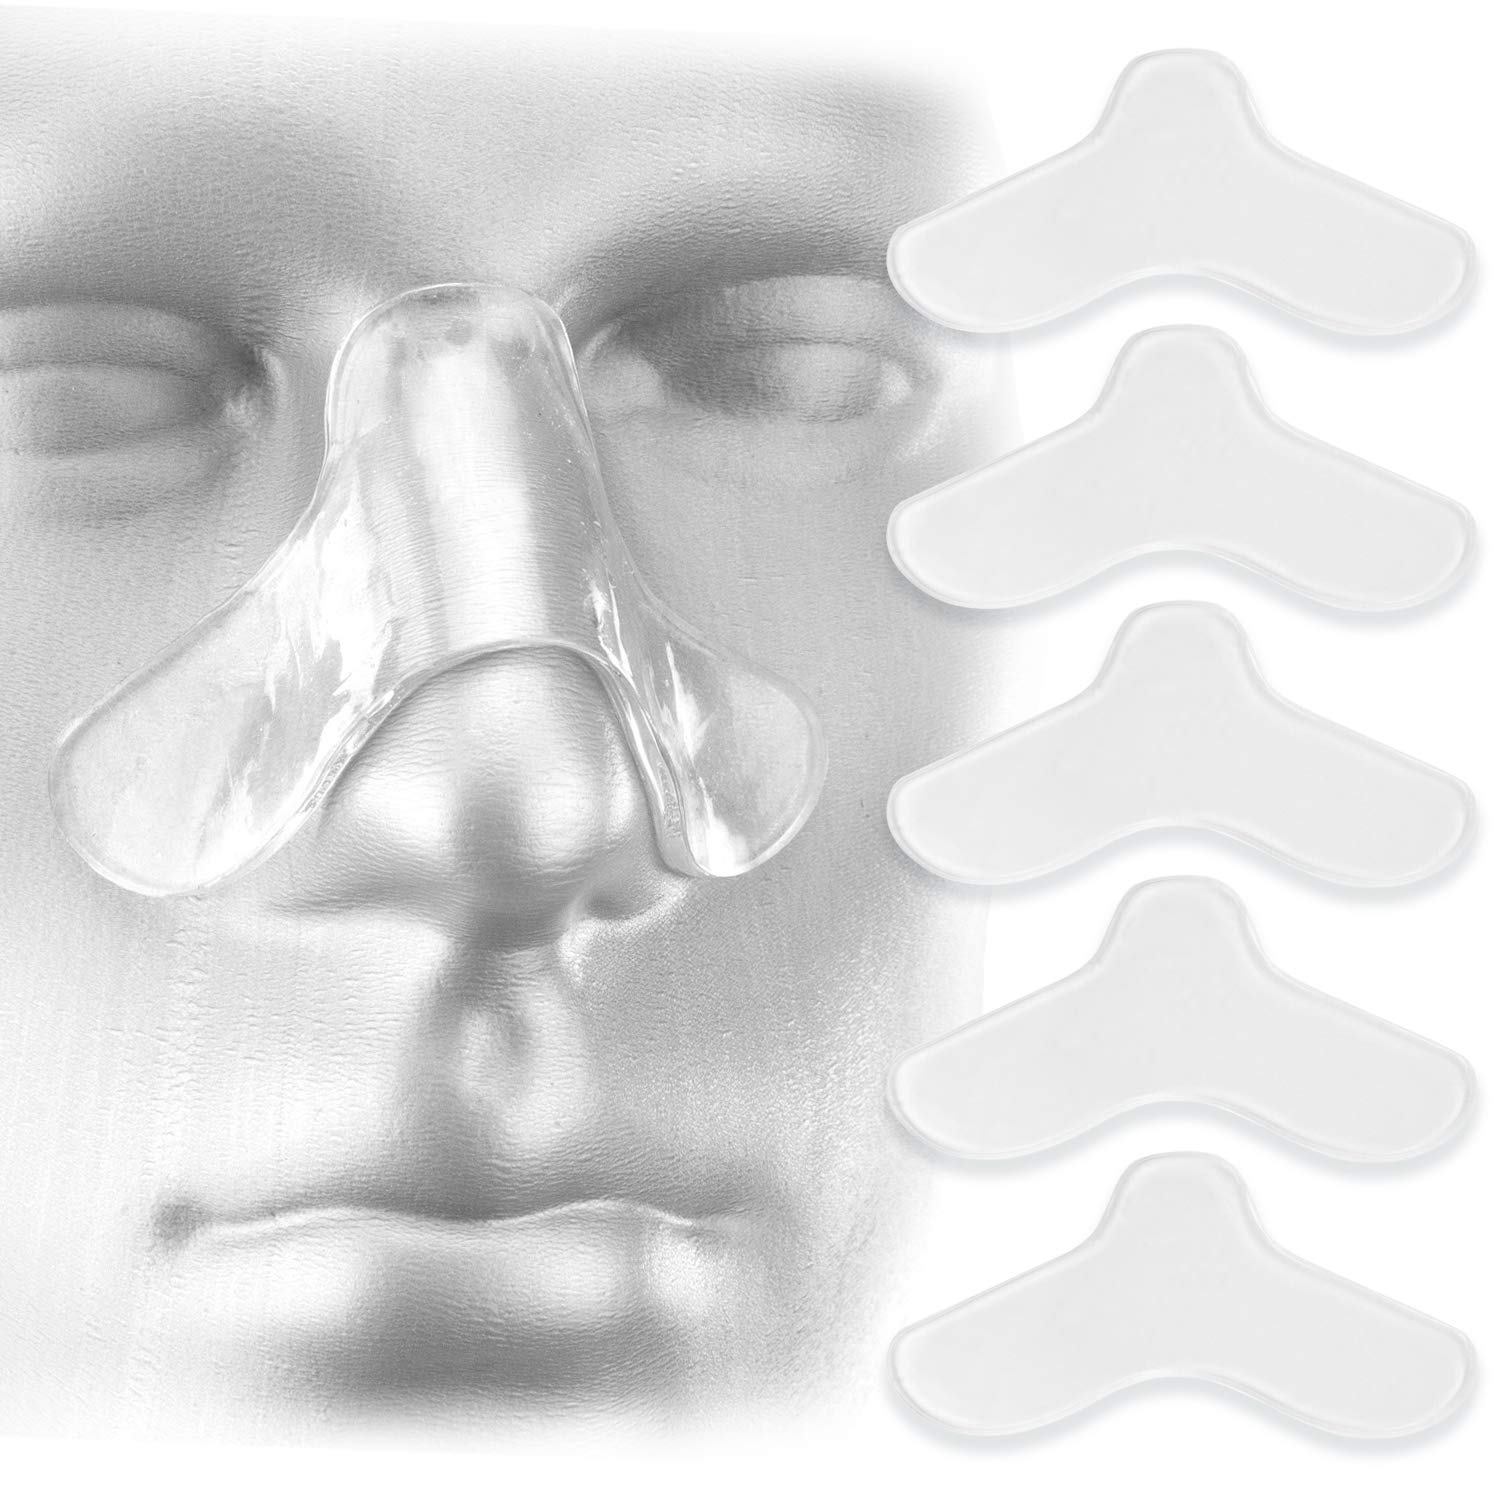 5 Pack Nasal Pads for CPAP Mask - CPAP Nose Pads - CPAP Supplies for CPAP Machine - Sleep Apnea Mask Comfort Pad - Custom Design & Can Be Trimmed to Size - CPAP Cushions for Most Masks